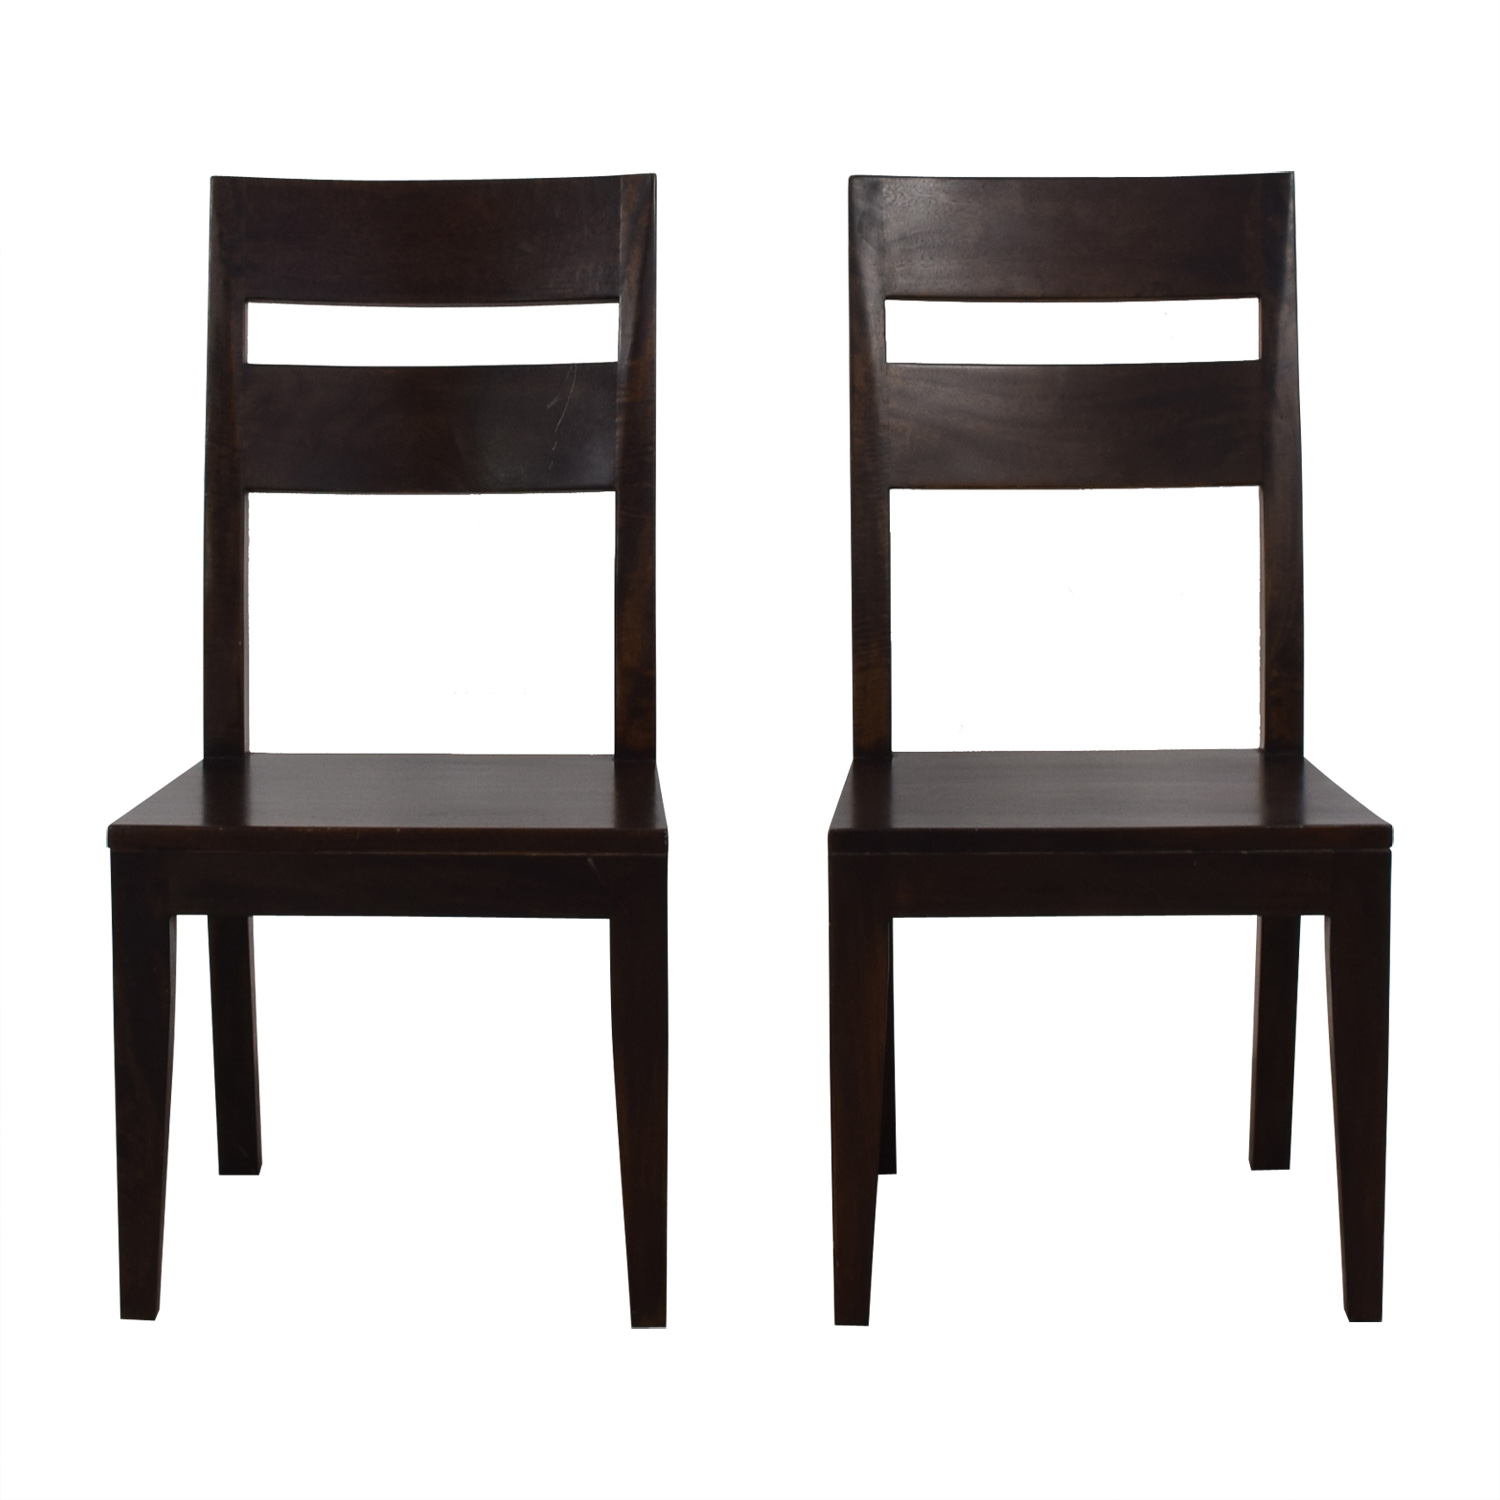 shop Crate & Barrel Crate & Barrel Wood Dining Chairs online